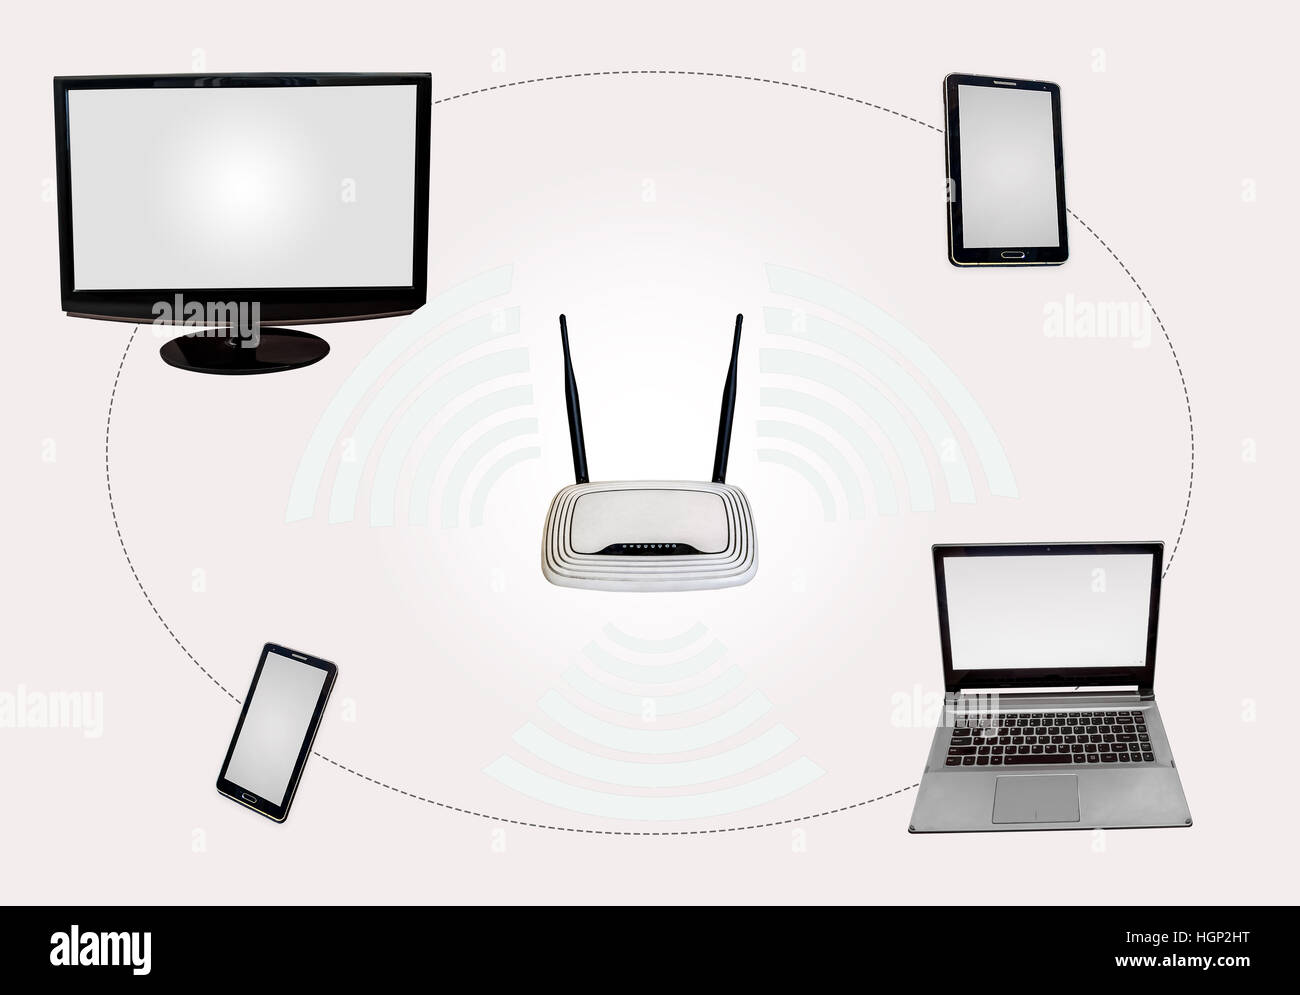 Modem Diagram Stock Photos Images Alamy Wireless Internet Connectivity Zone With Router Desktop Monitor Laptop Tab Smart Phone Isolated In White